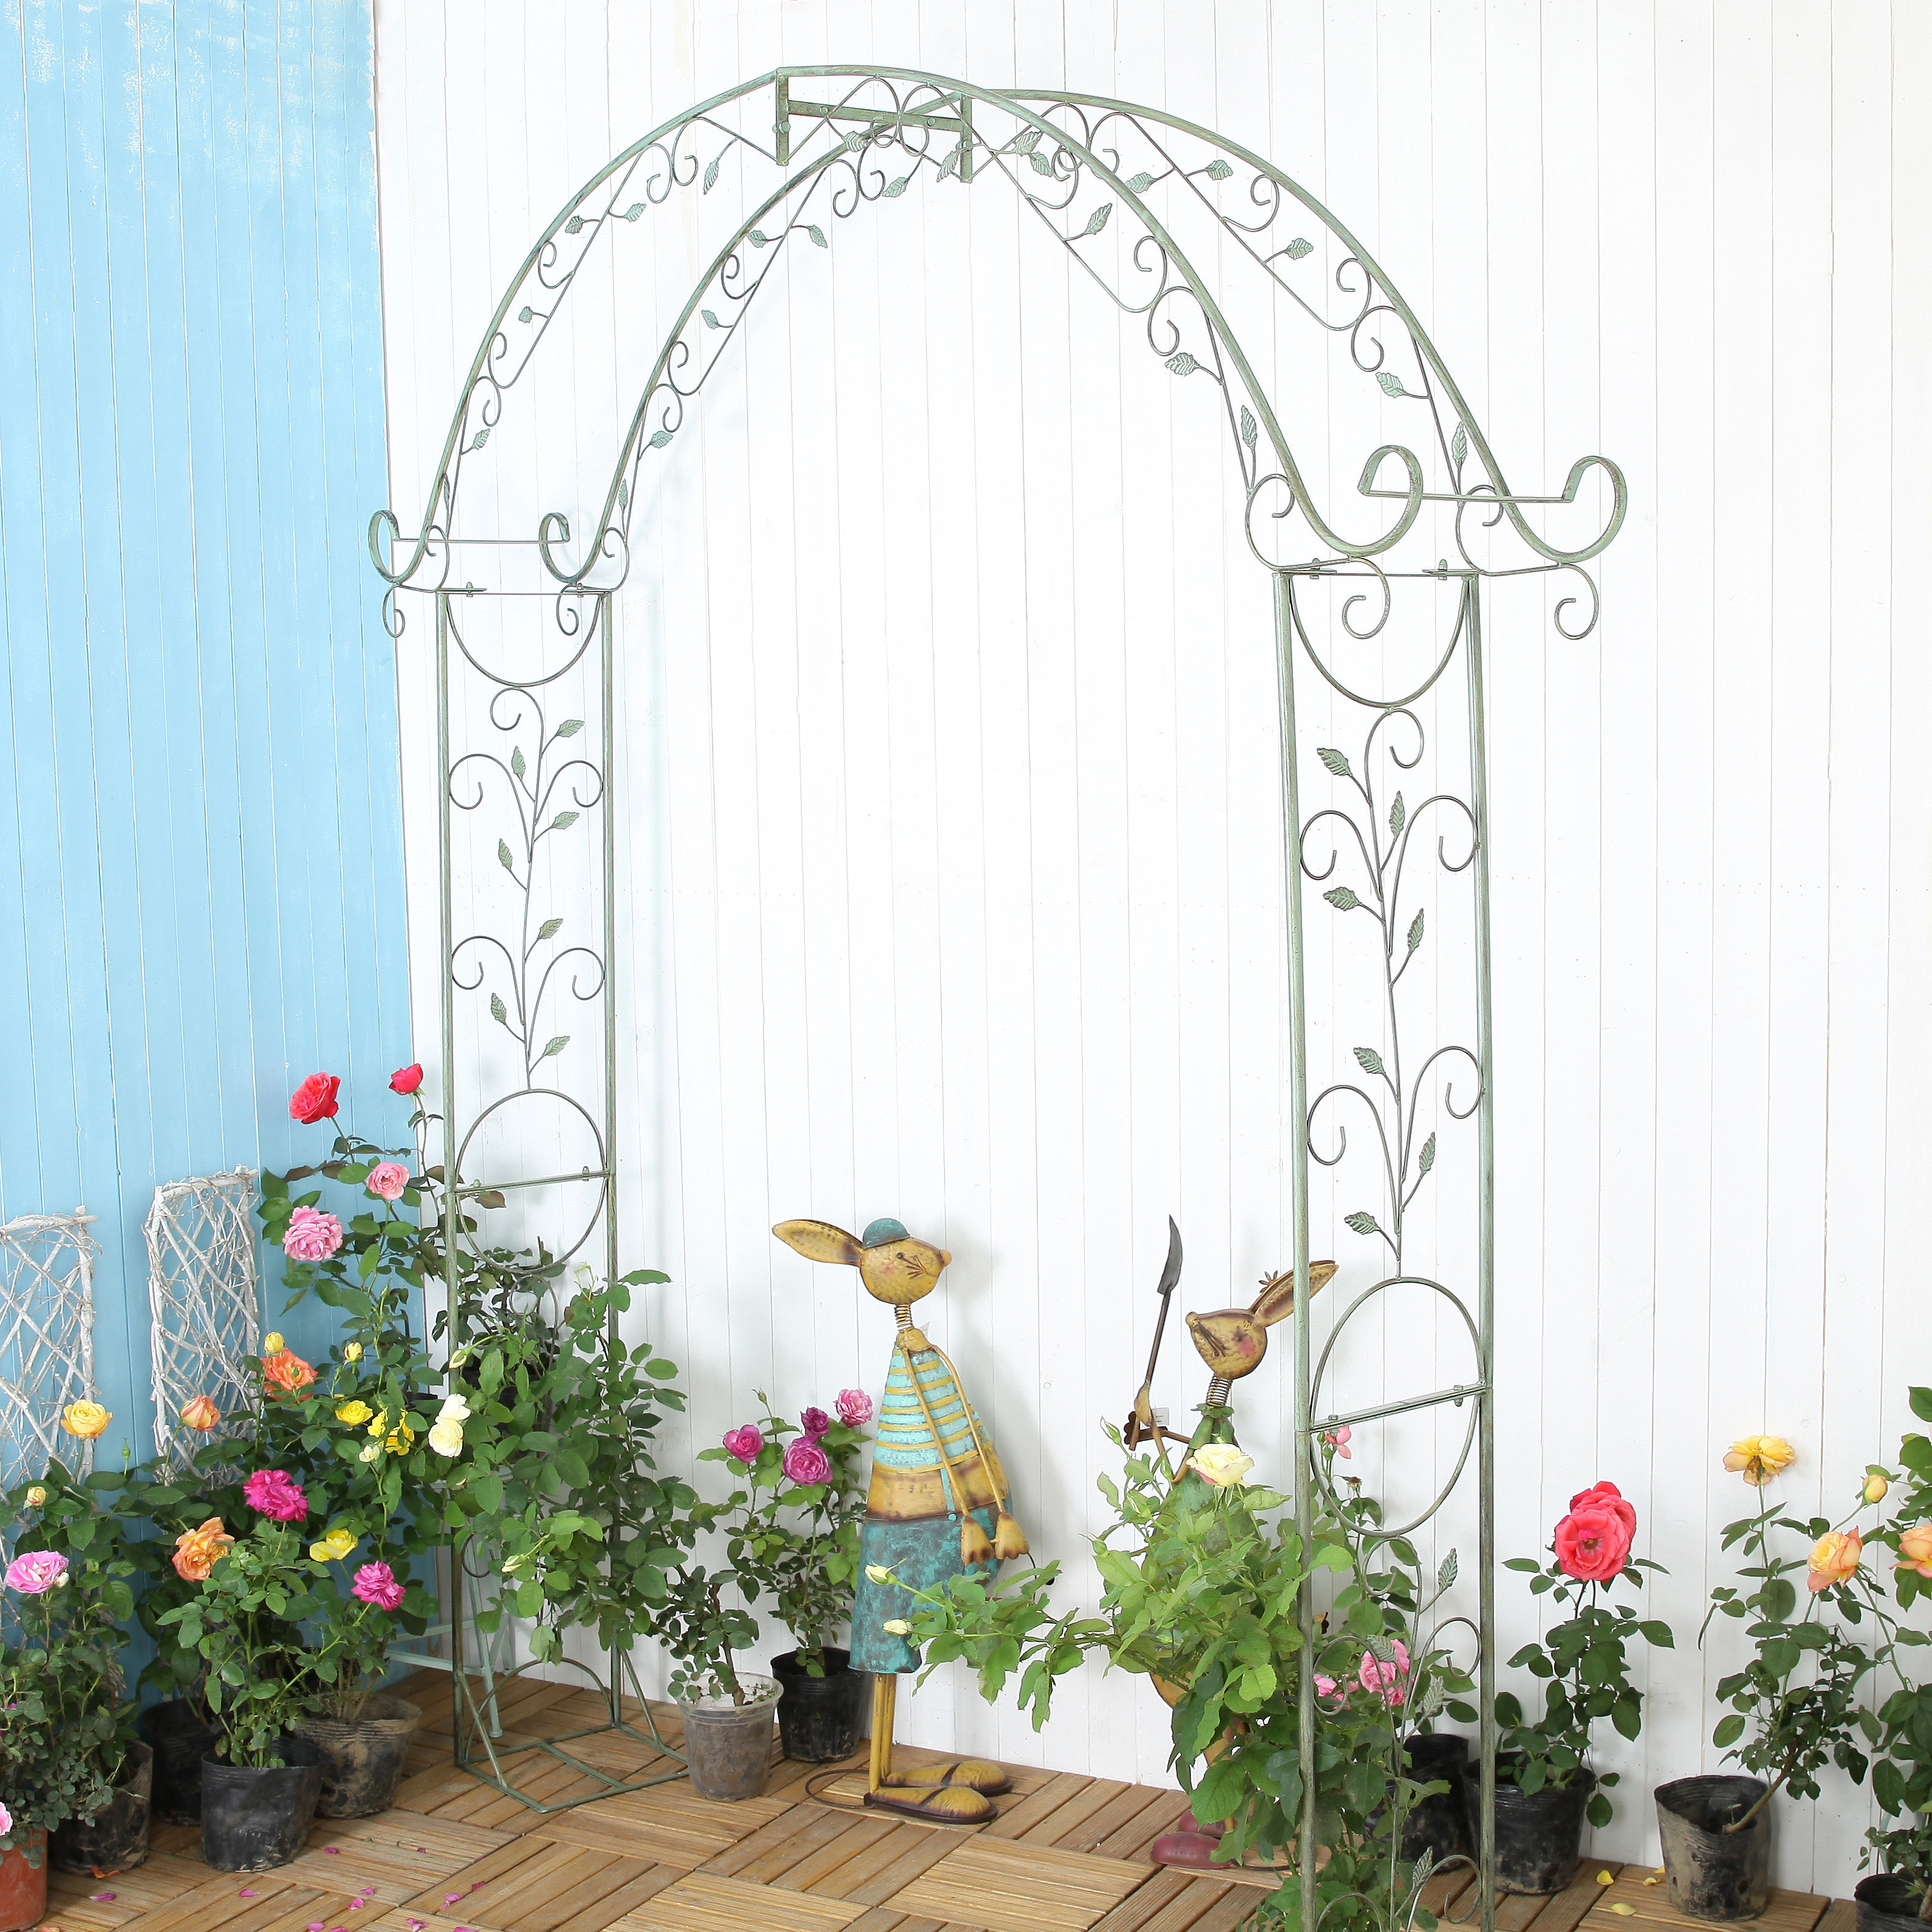 Ancient iron art large span flowers monthly arch flower rack dew garden garden villa property plant climbing rattan frame